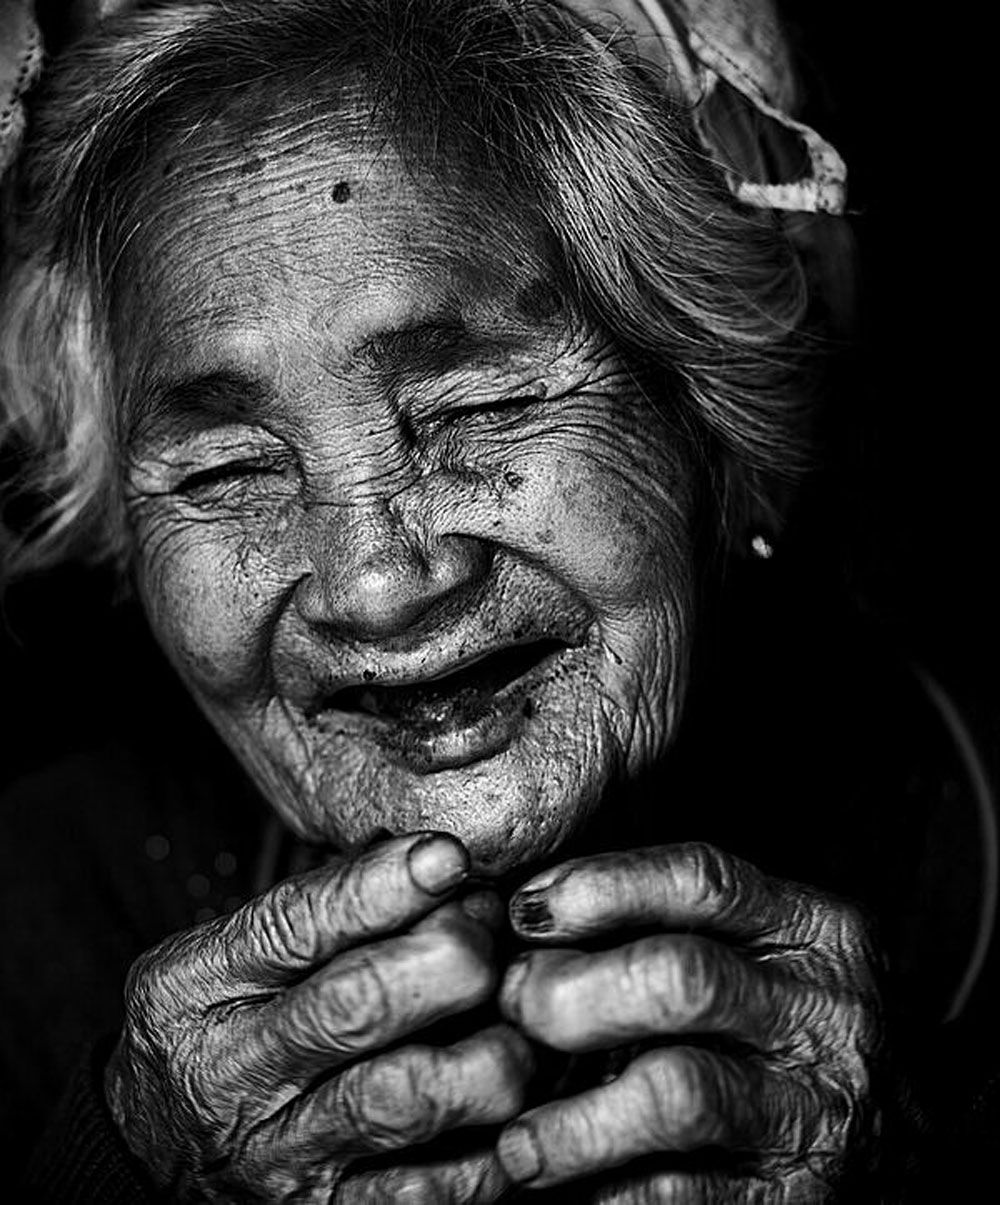 Four Vietnam photos, Agora, best of 2020, biggest photo contest, The Shadow, Smile of Mom, belief and joy